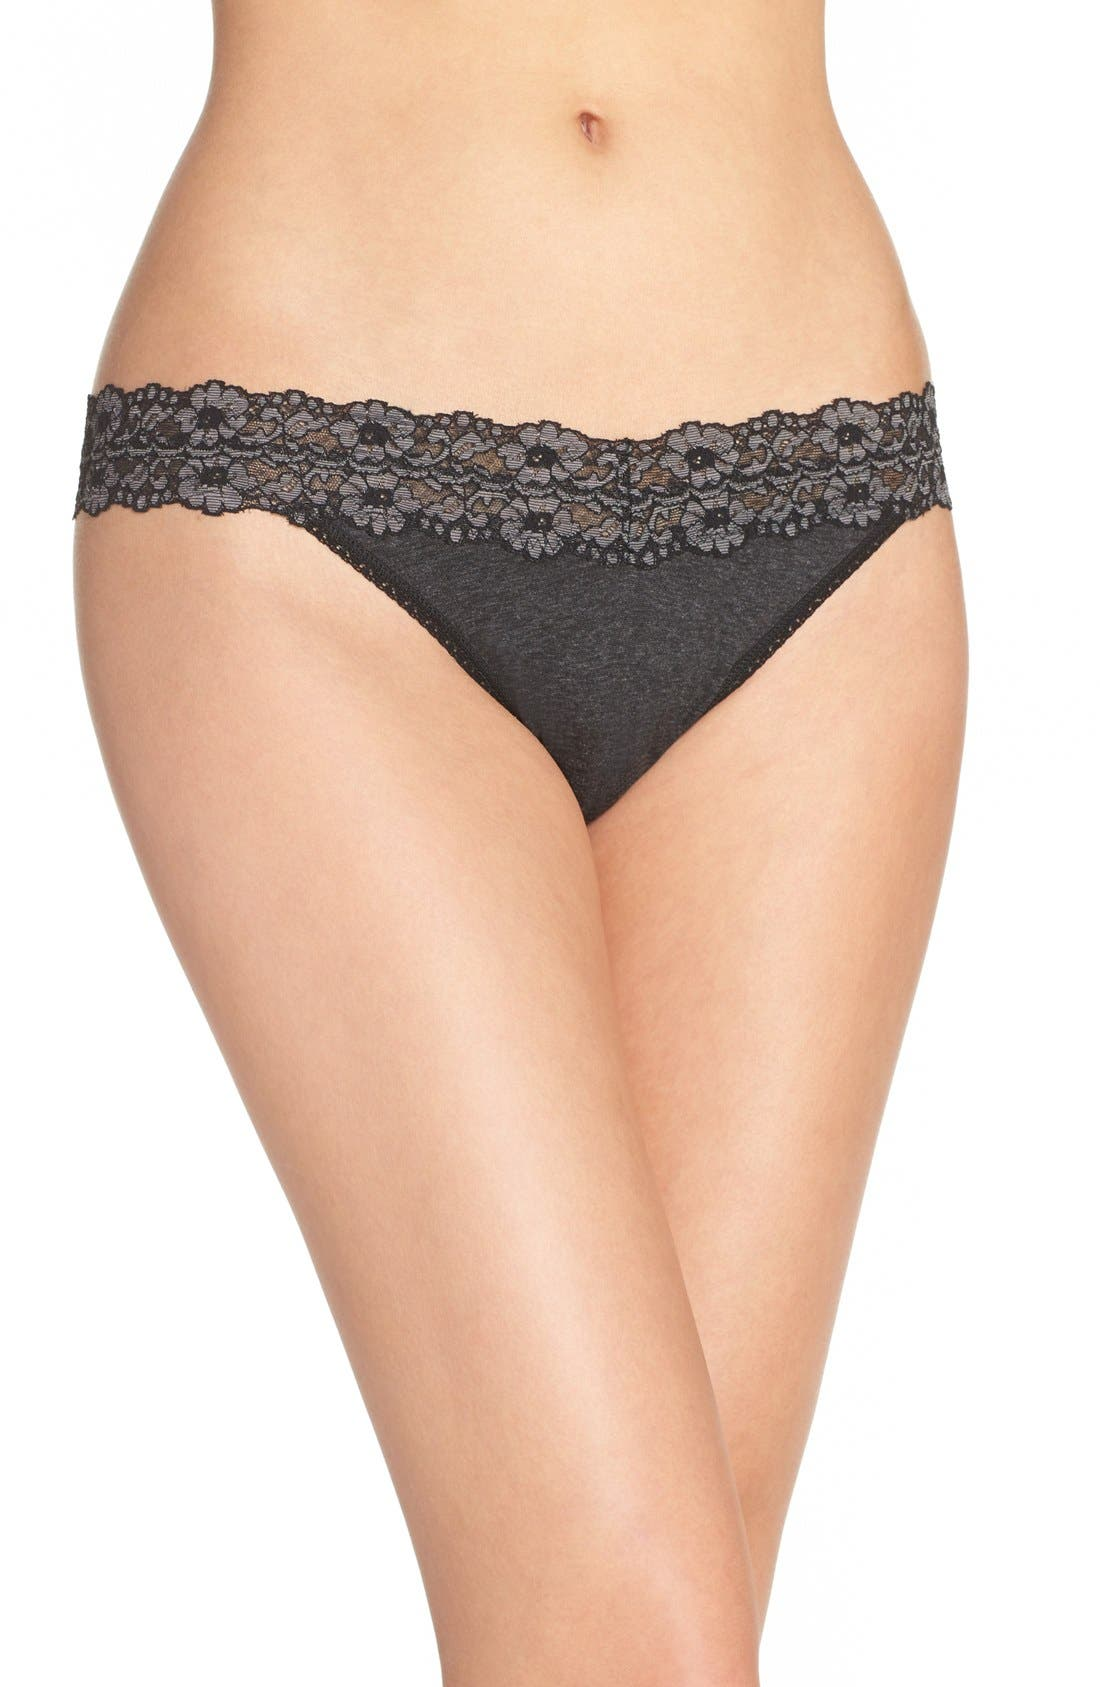 'Heather' Jersey Original Rise Thong,                         Main,                         color, BLACK HEATHER